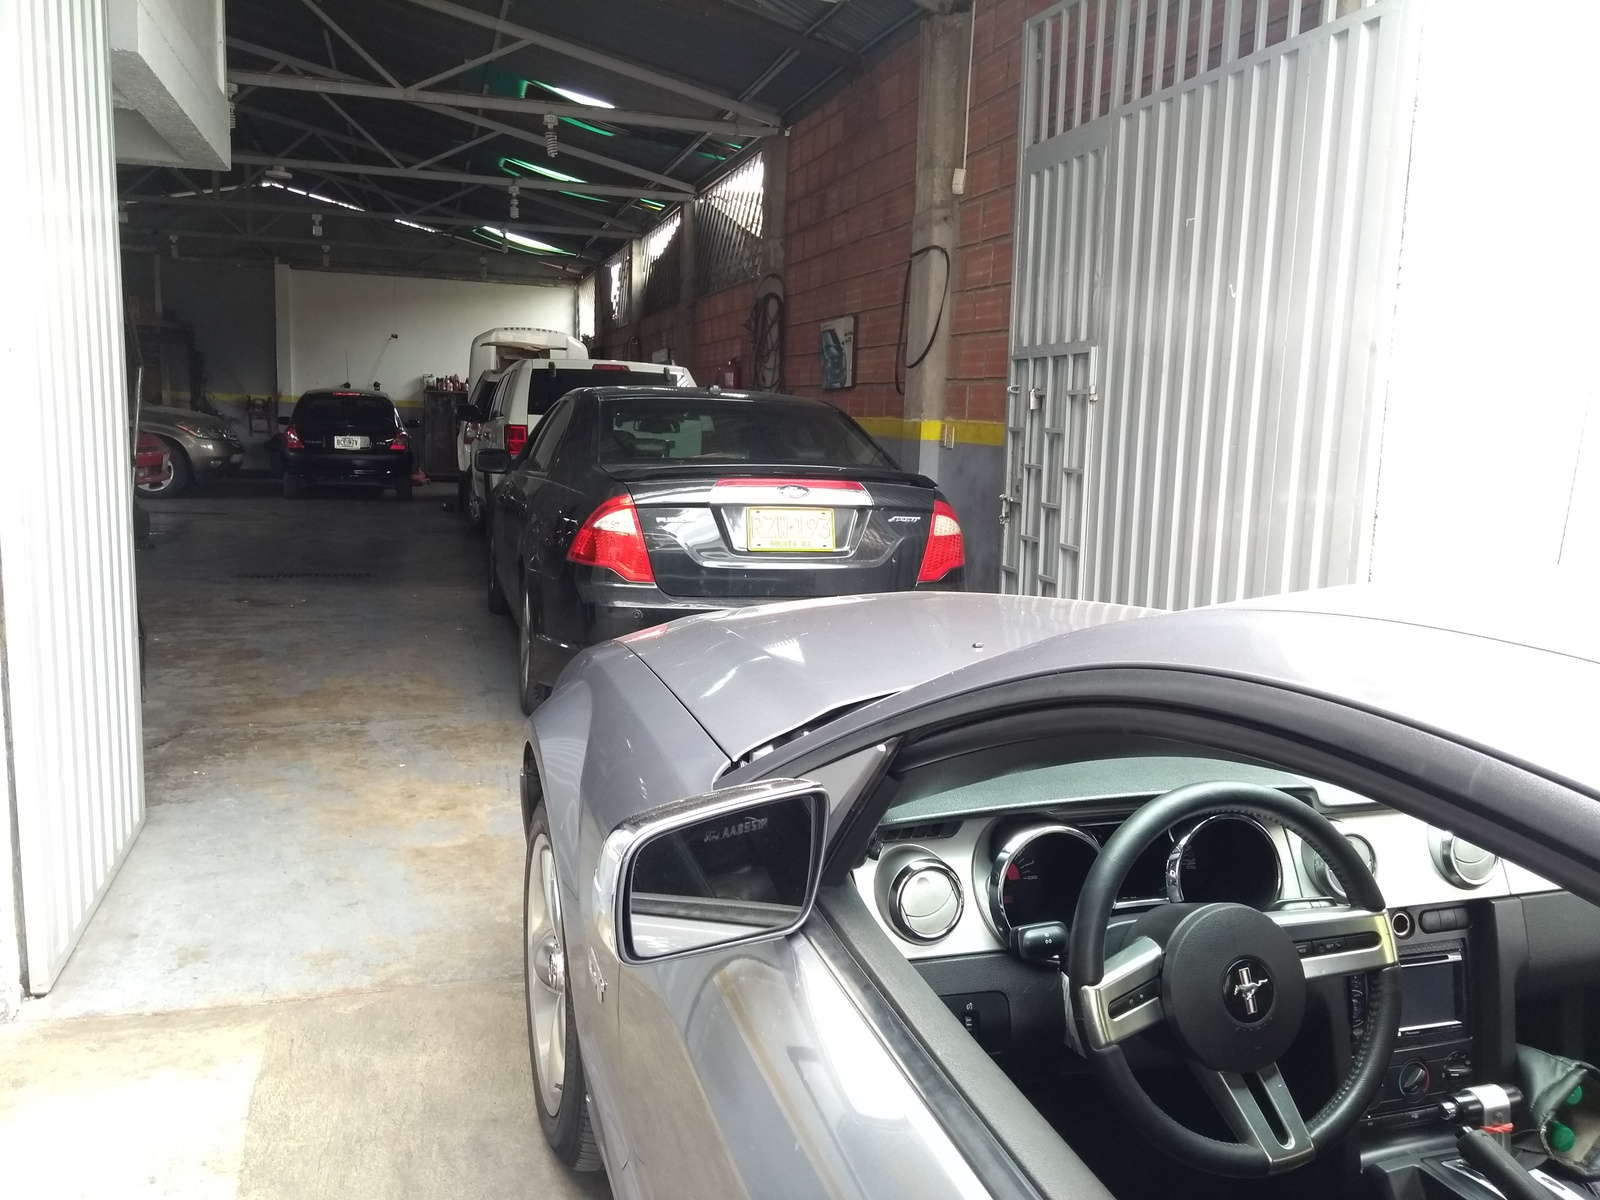 Ford Fusion Sport 0 60 >> 2010 Ford Fusion Sport 1/4 mile Drag Racing timeslip specs ...